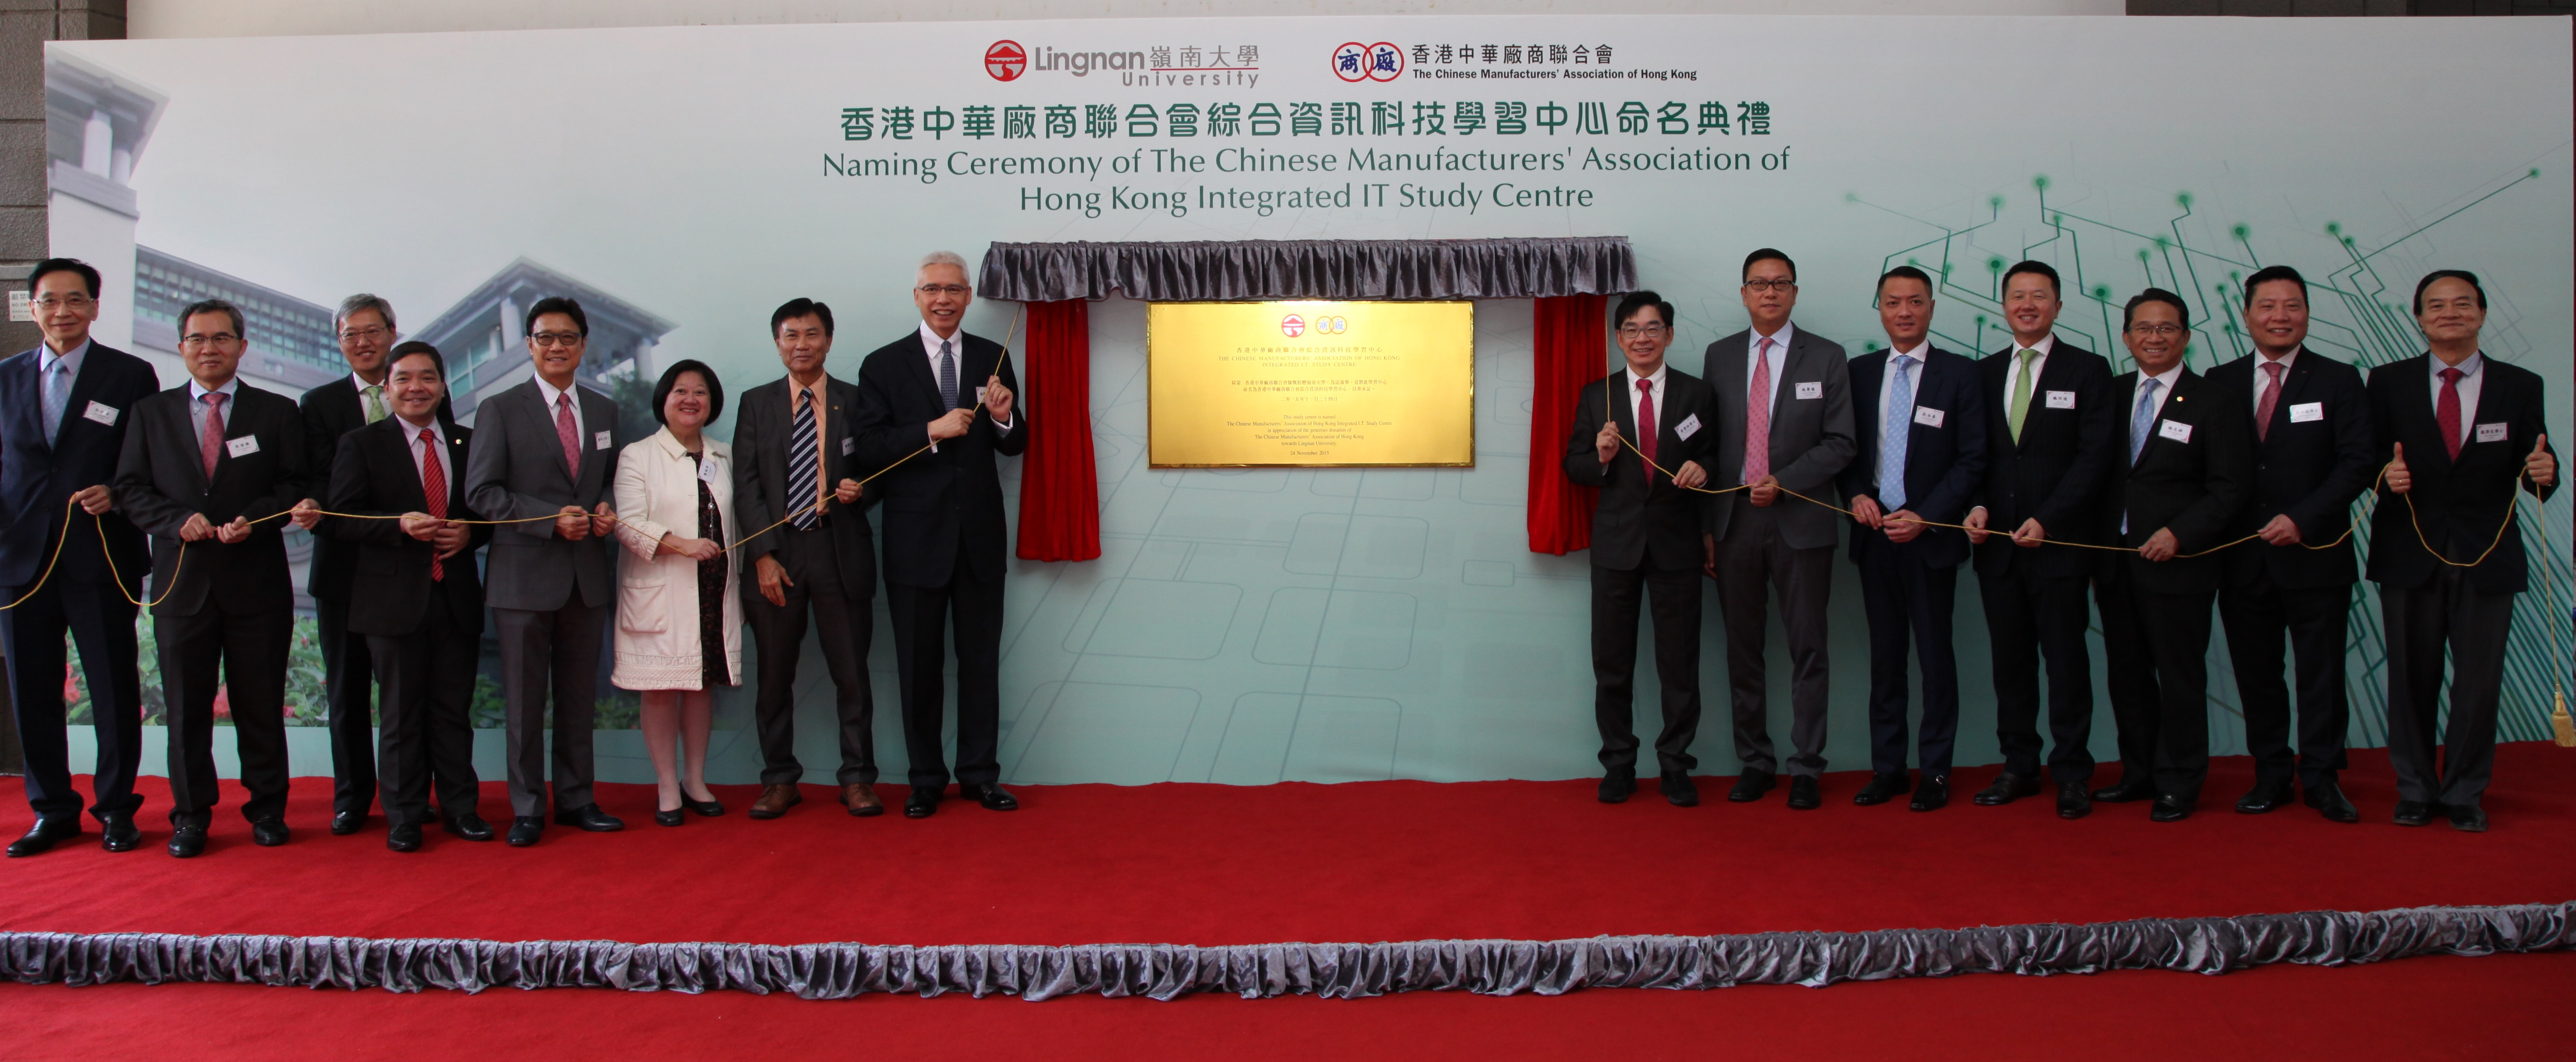 Guests of Lingnan University and CMA unveiled the curtain